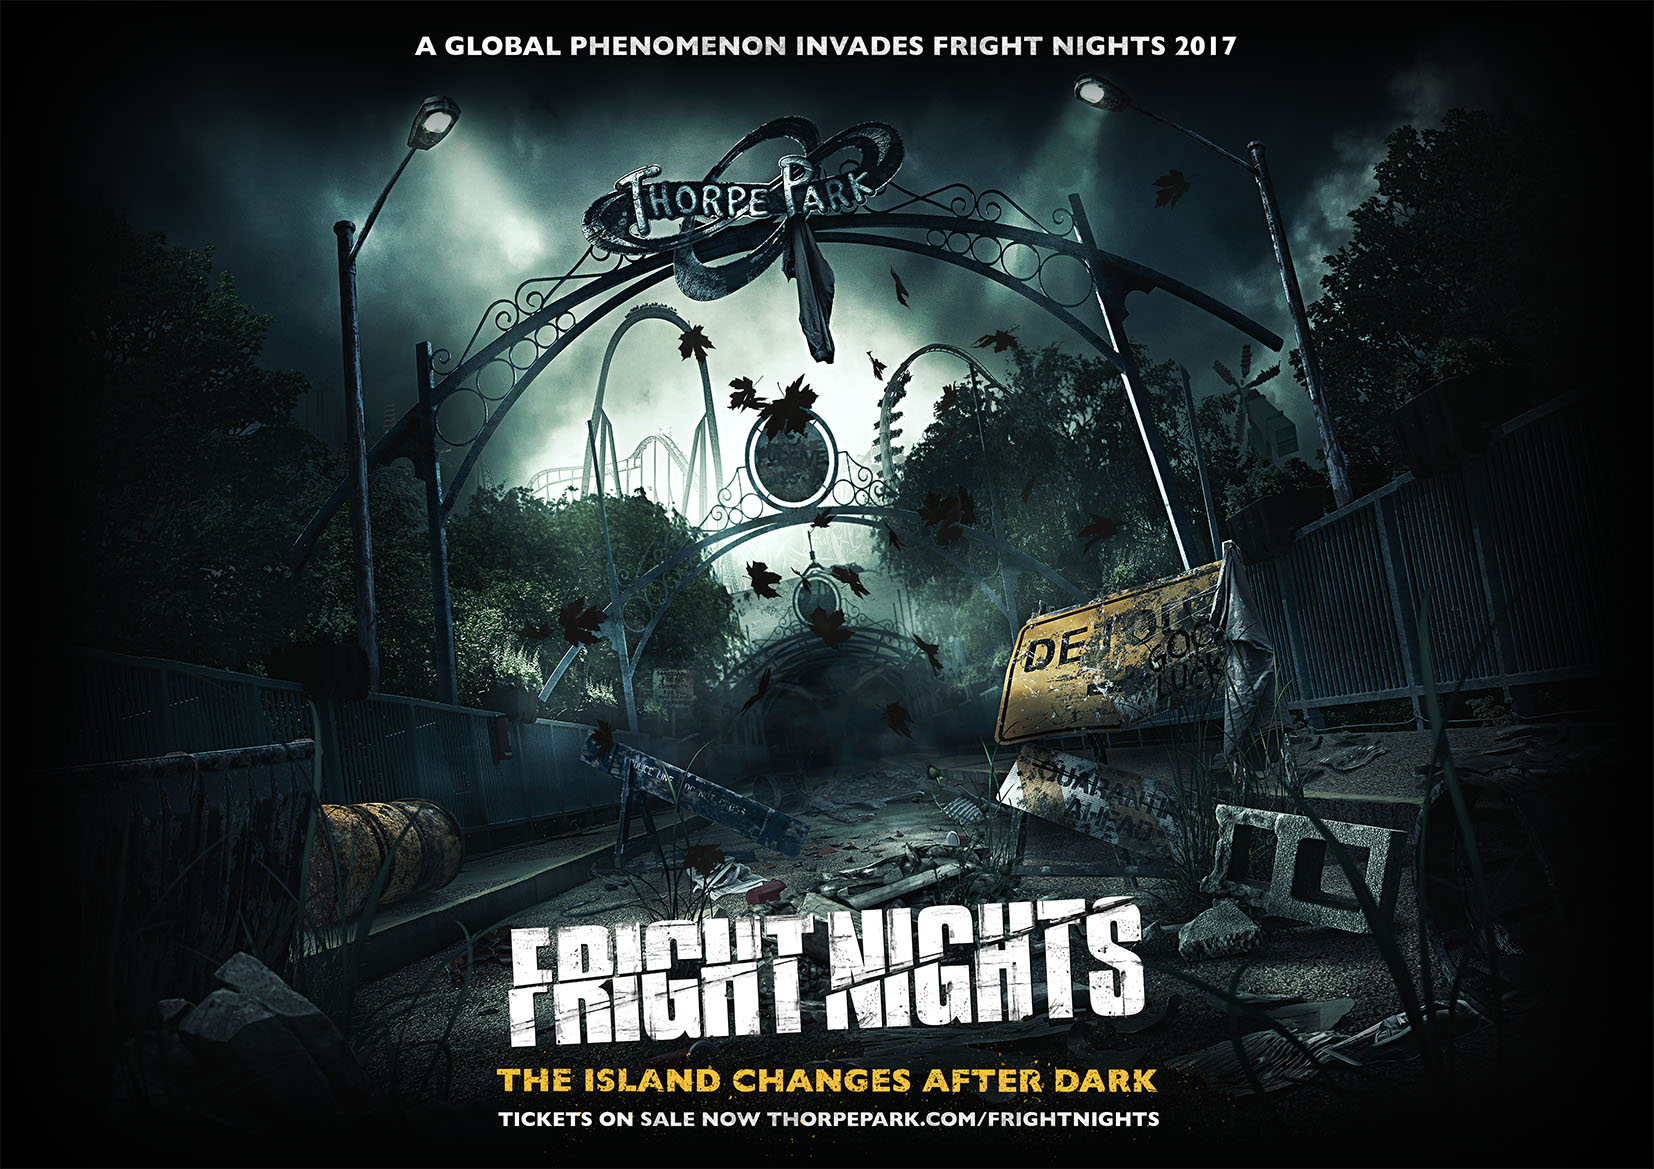 Fright Nights 2017 Visual featuring spooky scenery